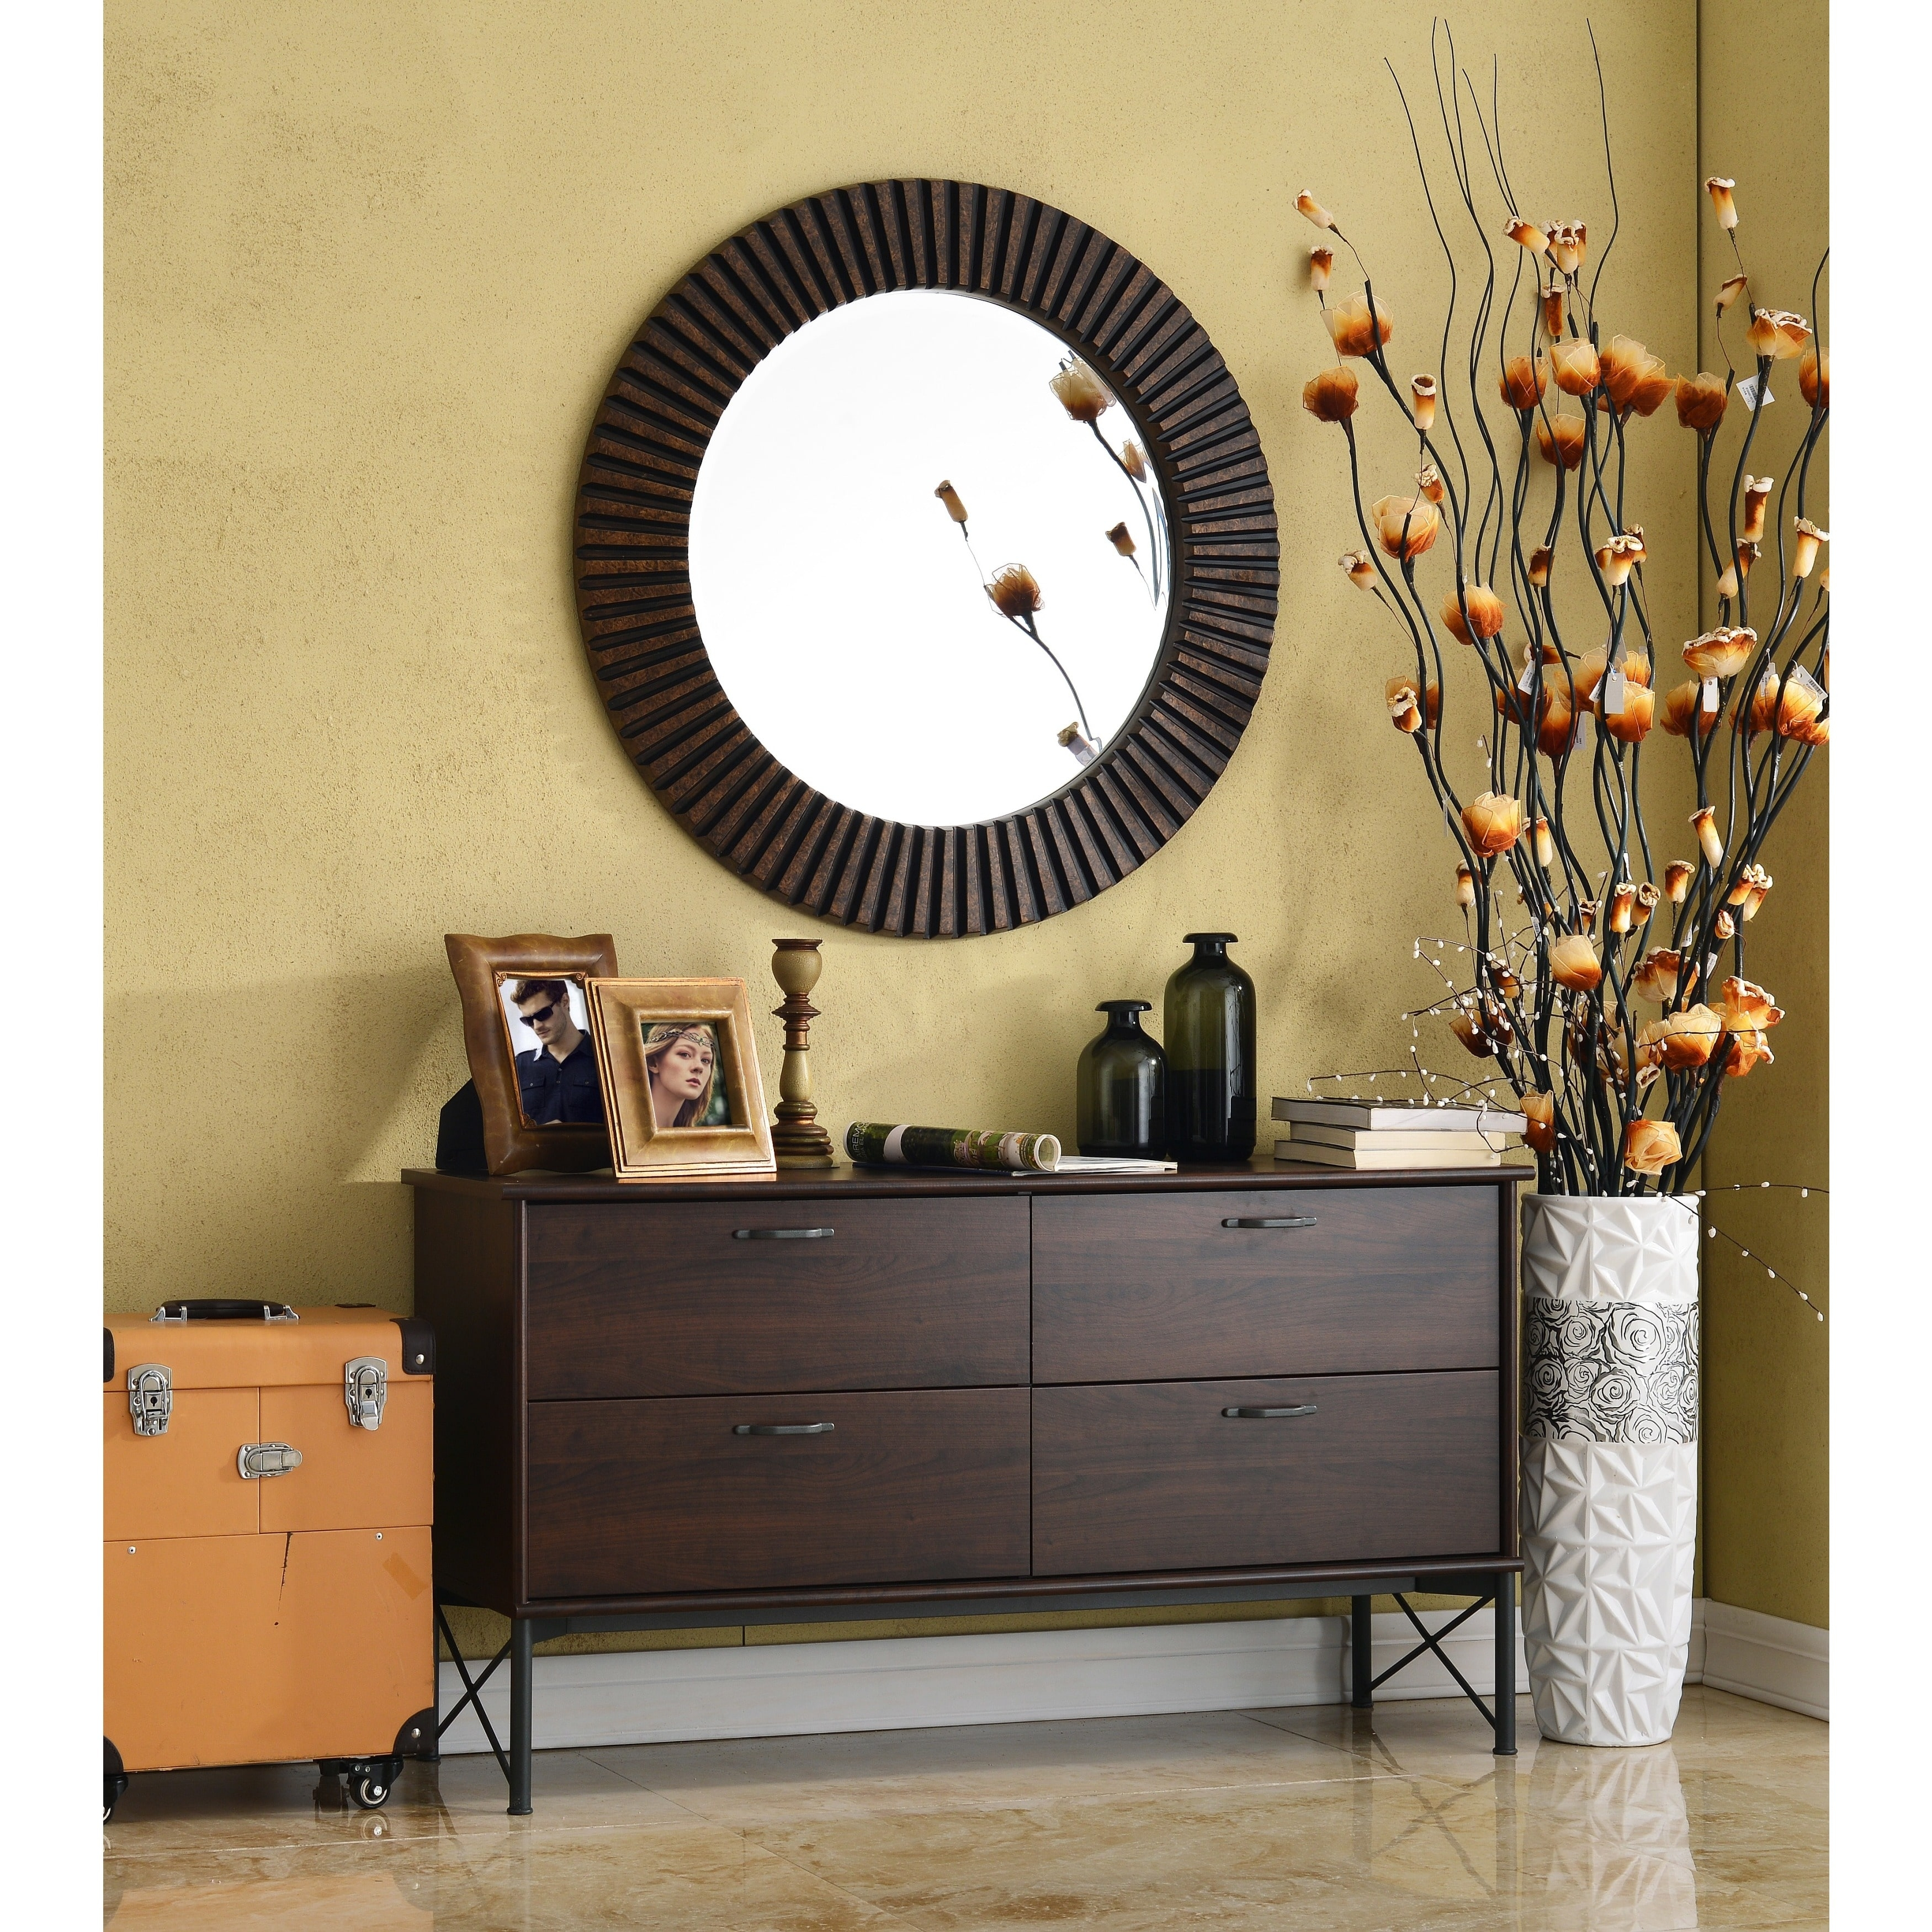 Hecate Bronze Wall Mirror Hecate Bronze Wall Mirror this hecate bronze beveled round decorative wall mirror makes a 3500 X 3500